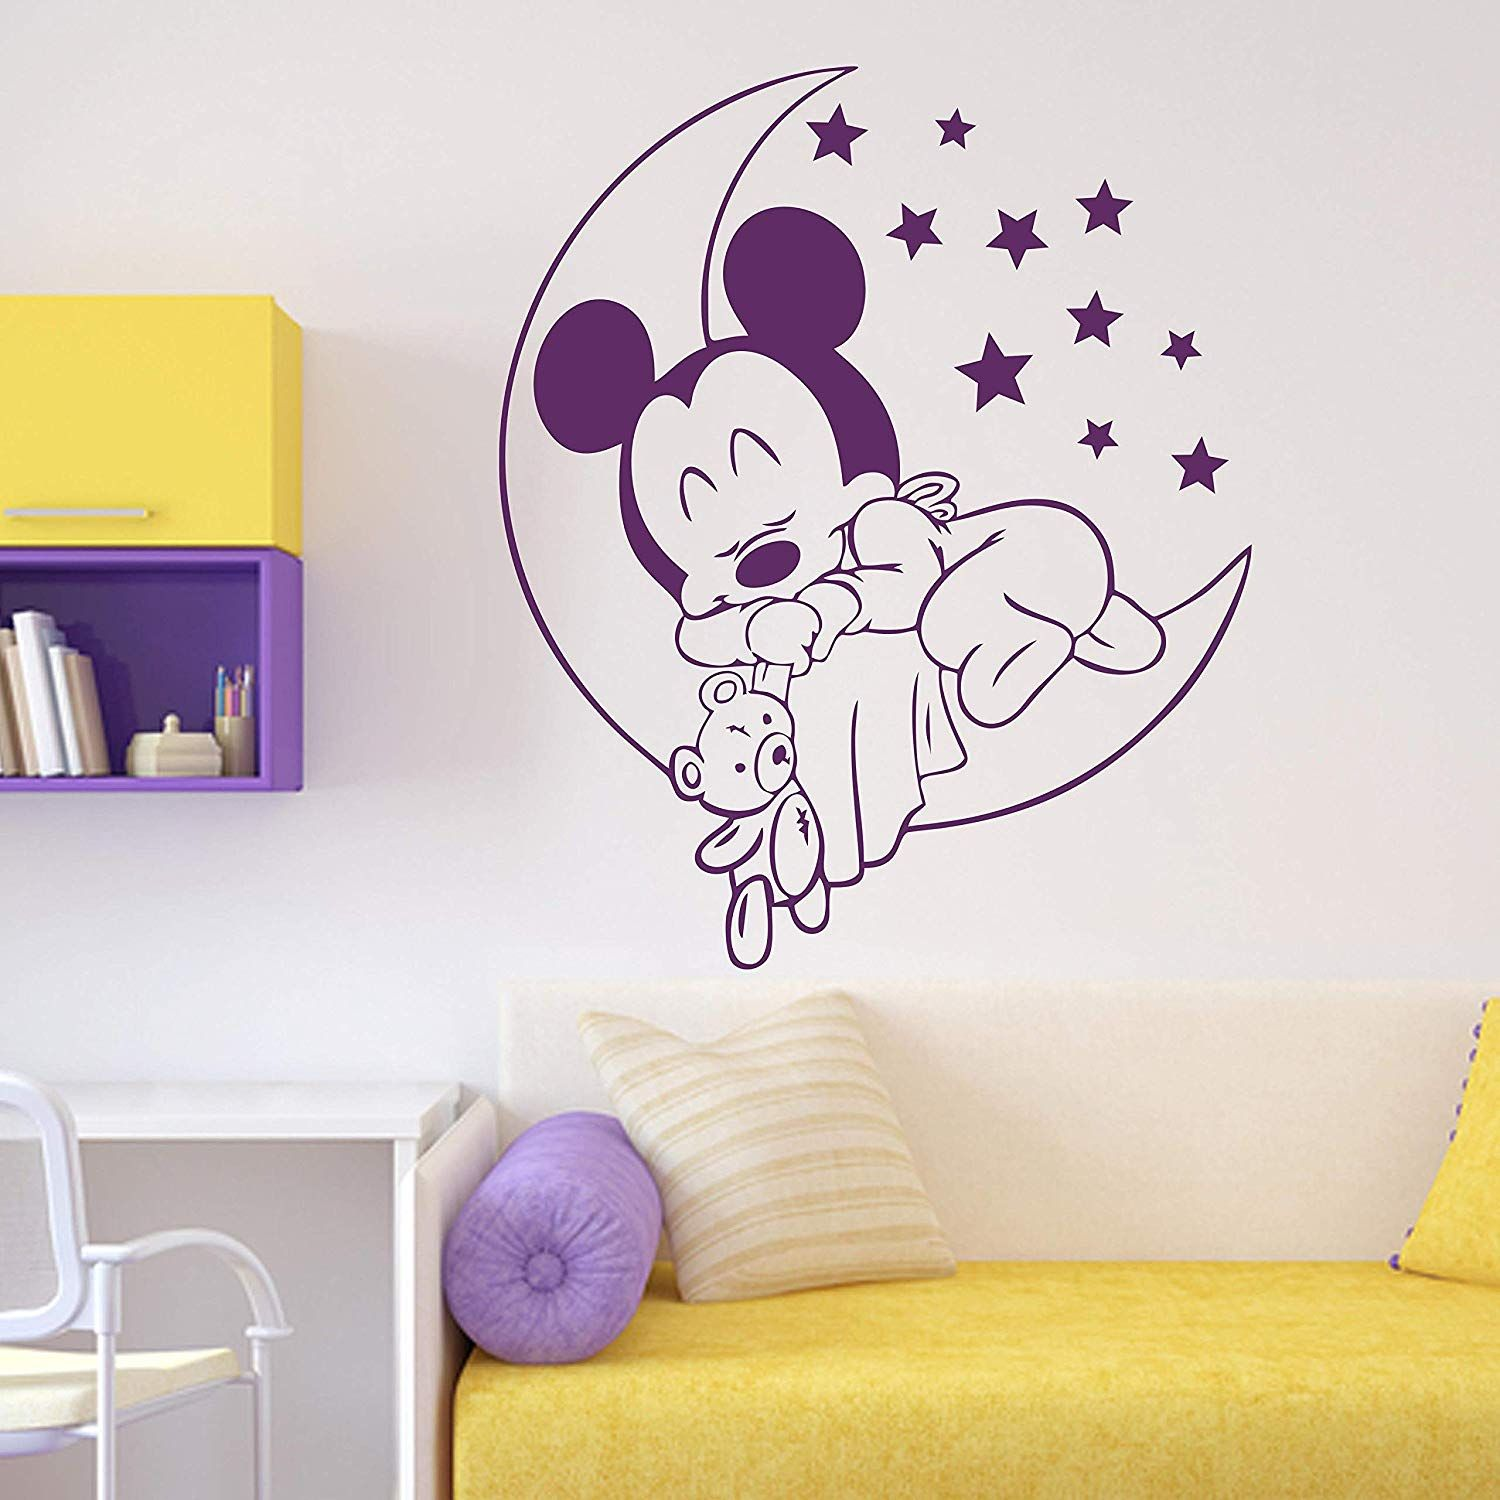 Disney Wall Decals Mickey Mouse Baby Wall Decal Moon Stars Walt